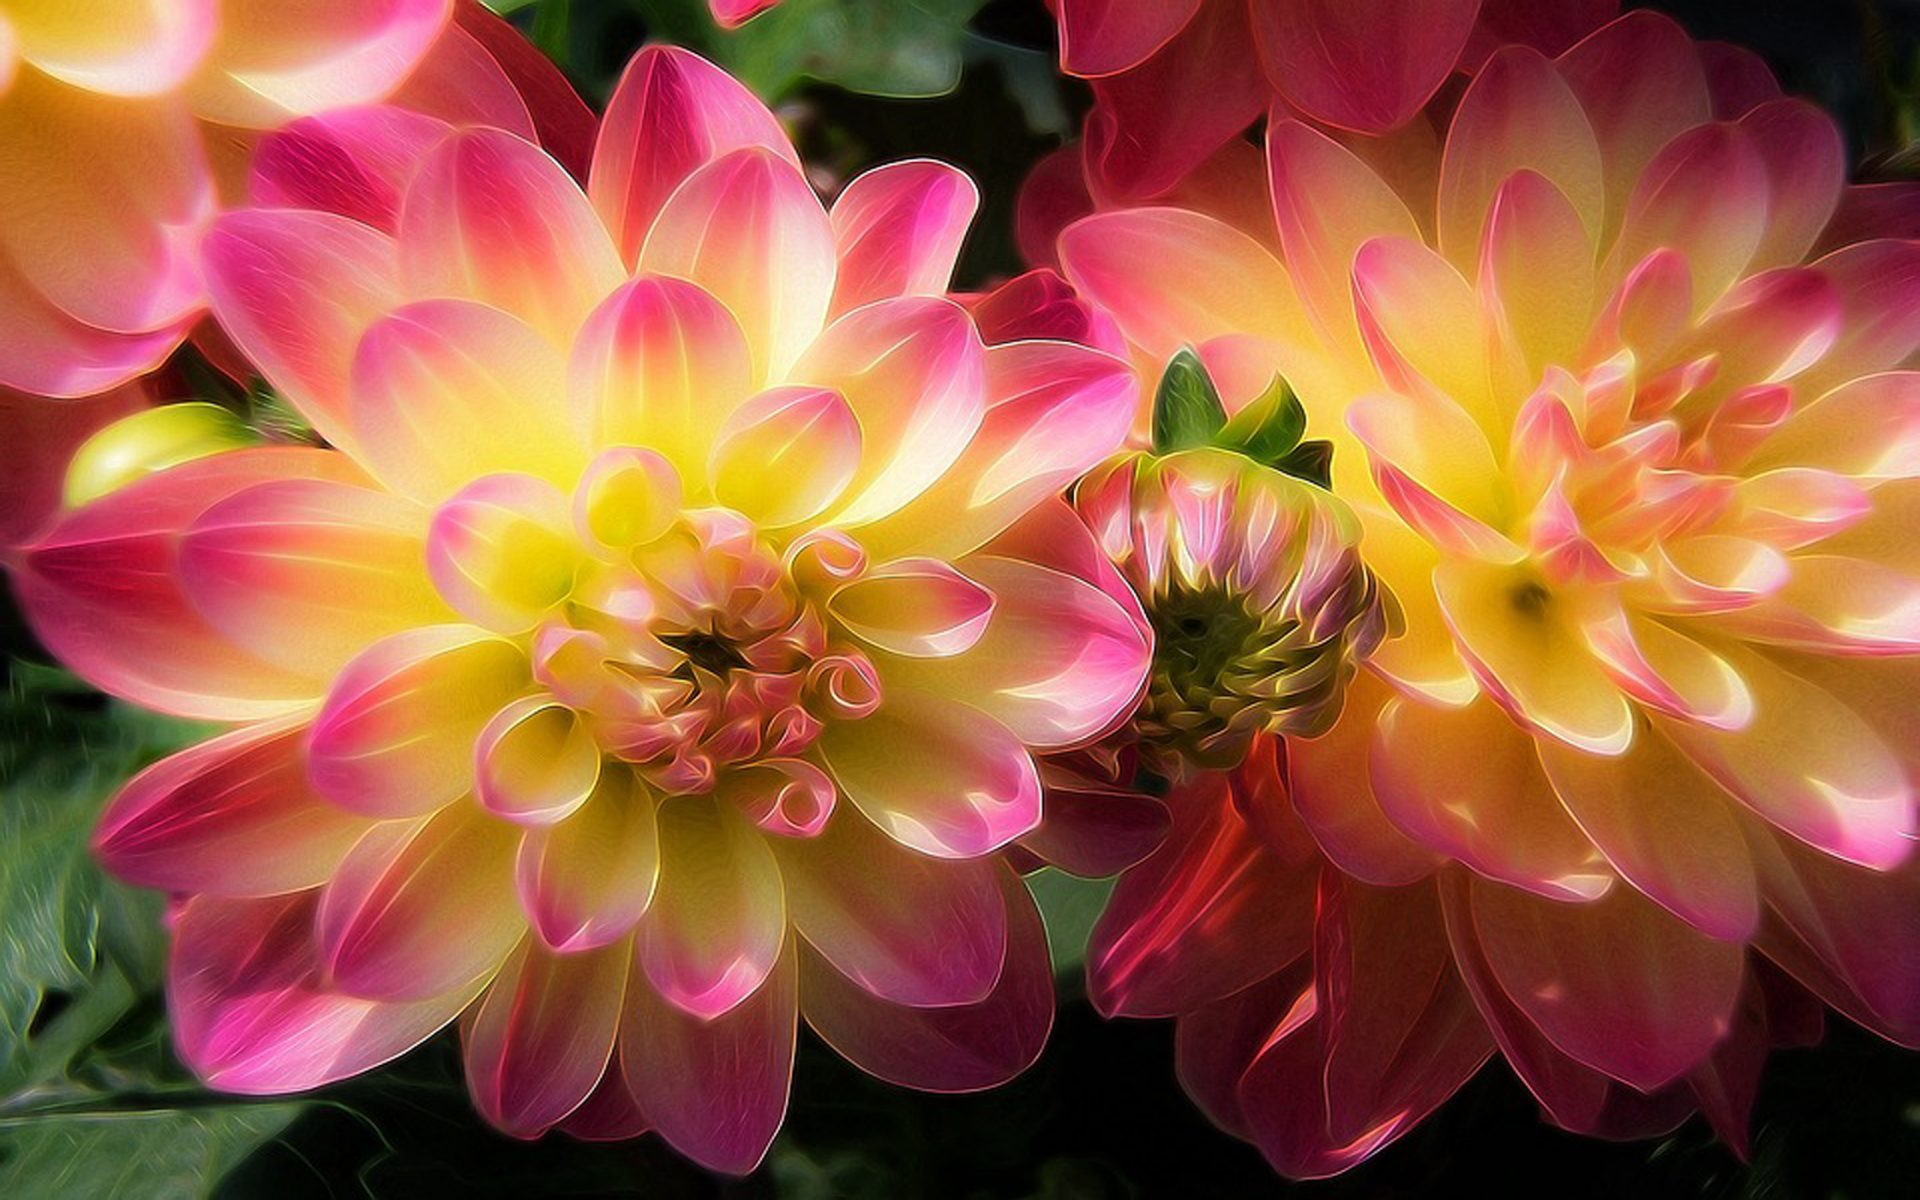 Cool Wallpapers Hd Iphone 7 Pink Dahlias Hd Wallpaper Background Image 1920x1200